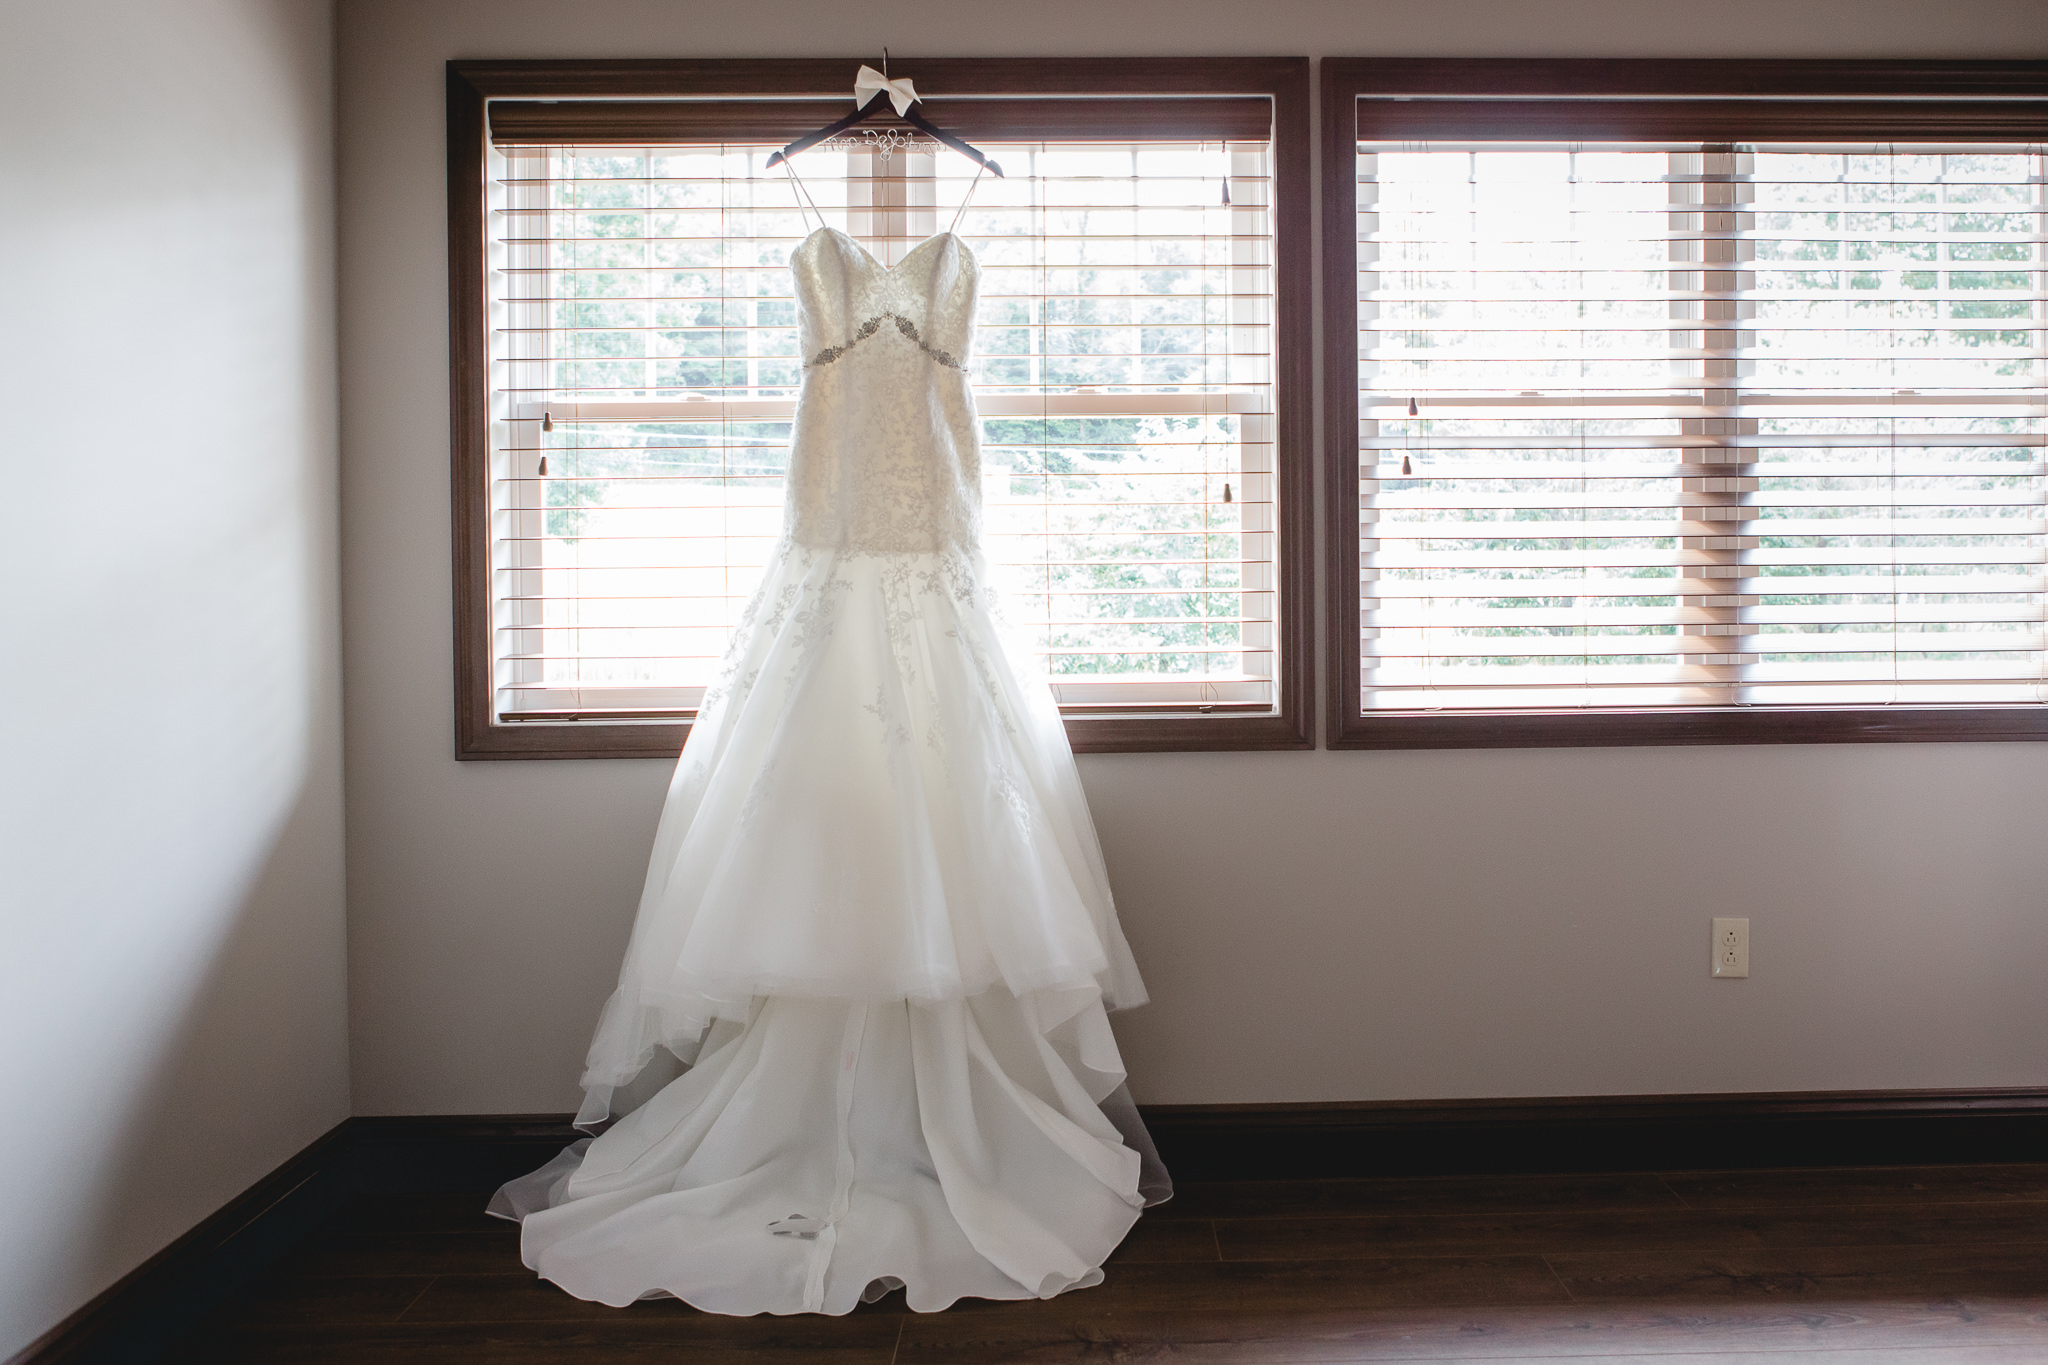 Alfred Angelo bridal gown hangs from a window before a wedding at the Gathering Place at Darlington Lake